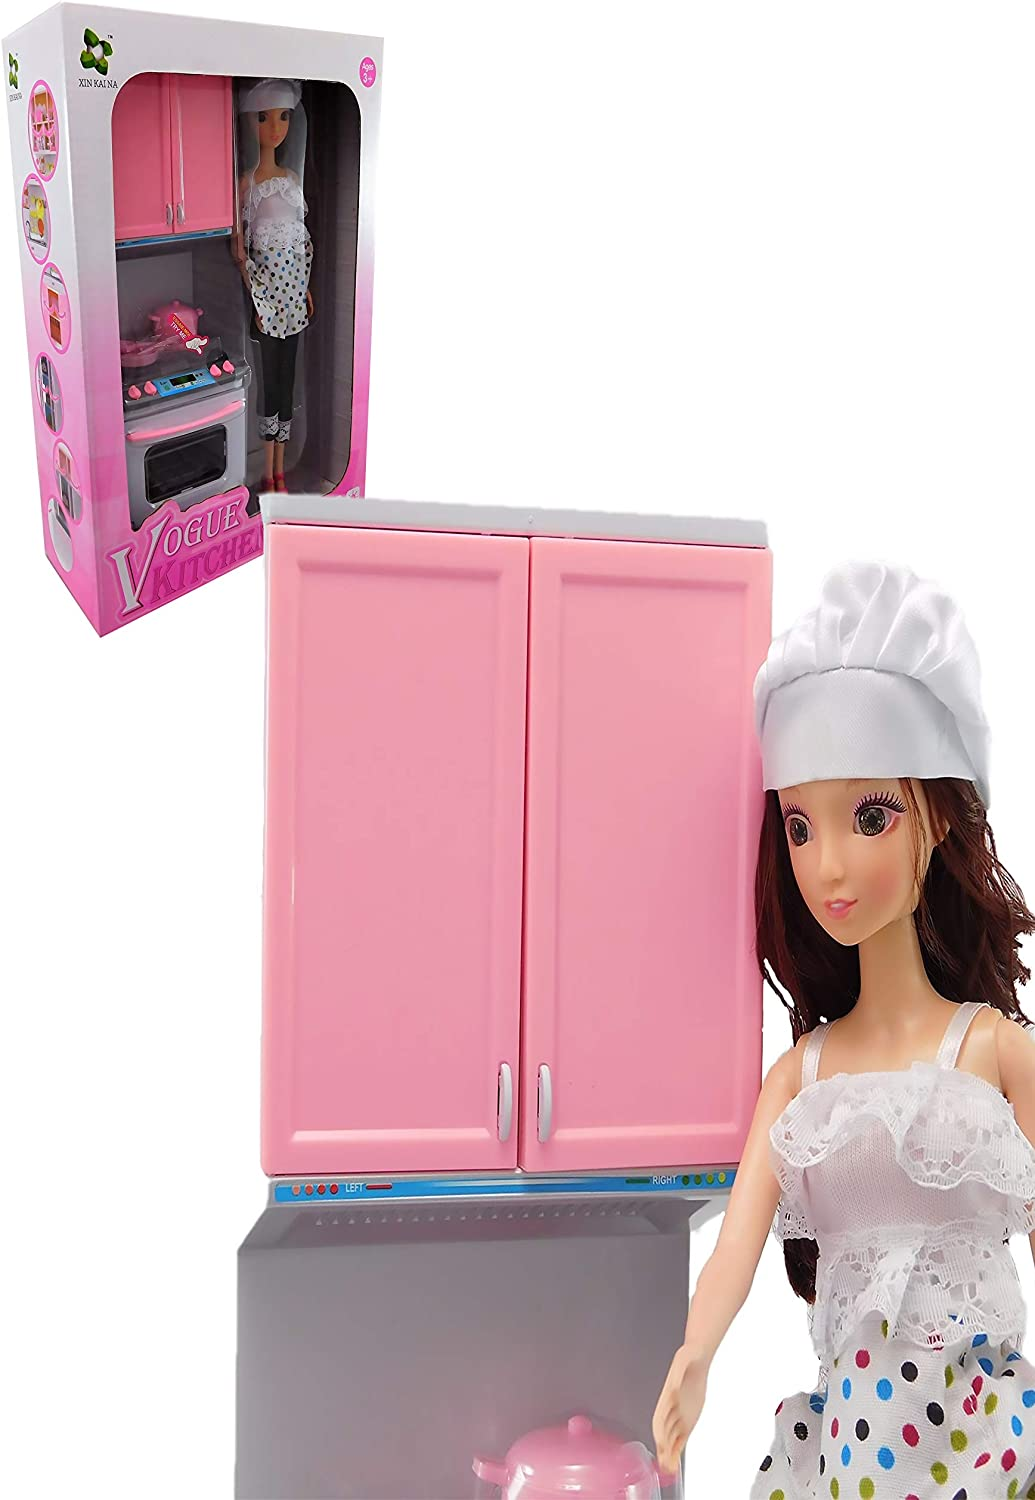 ALLKINDATHINGS Girls Toy Doll Kitchen Playset with 12-Inch Doll and Accessories